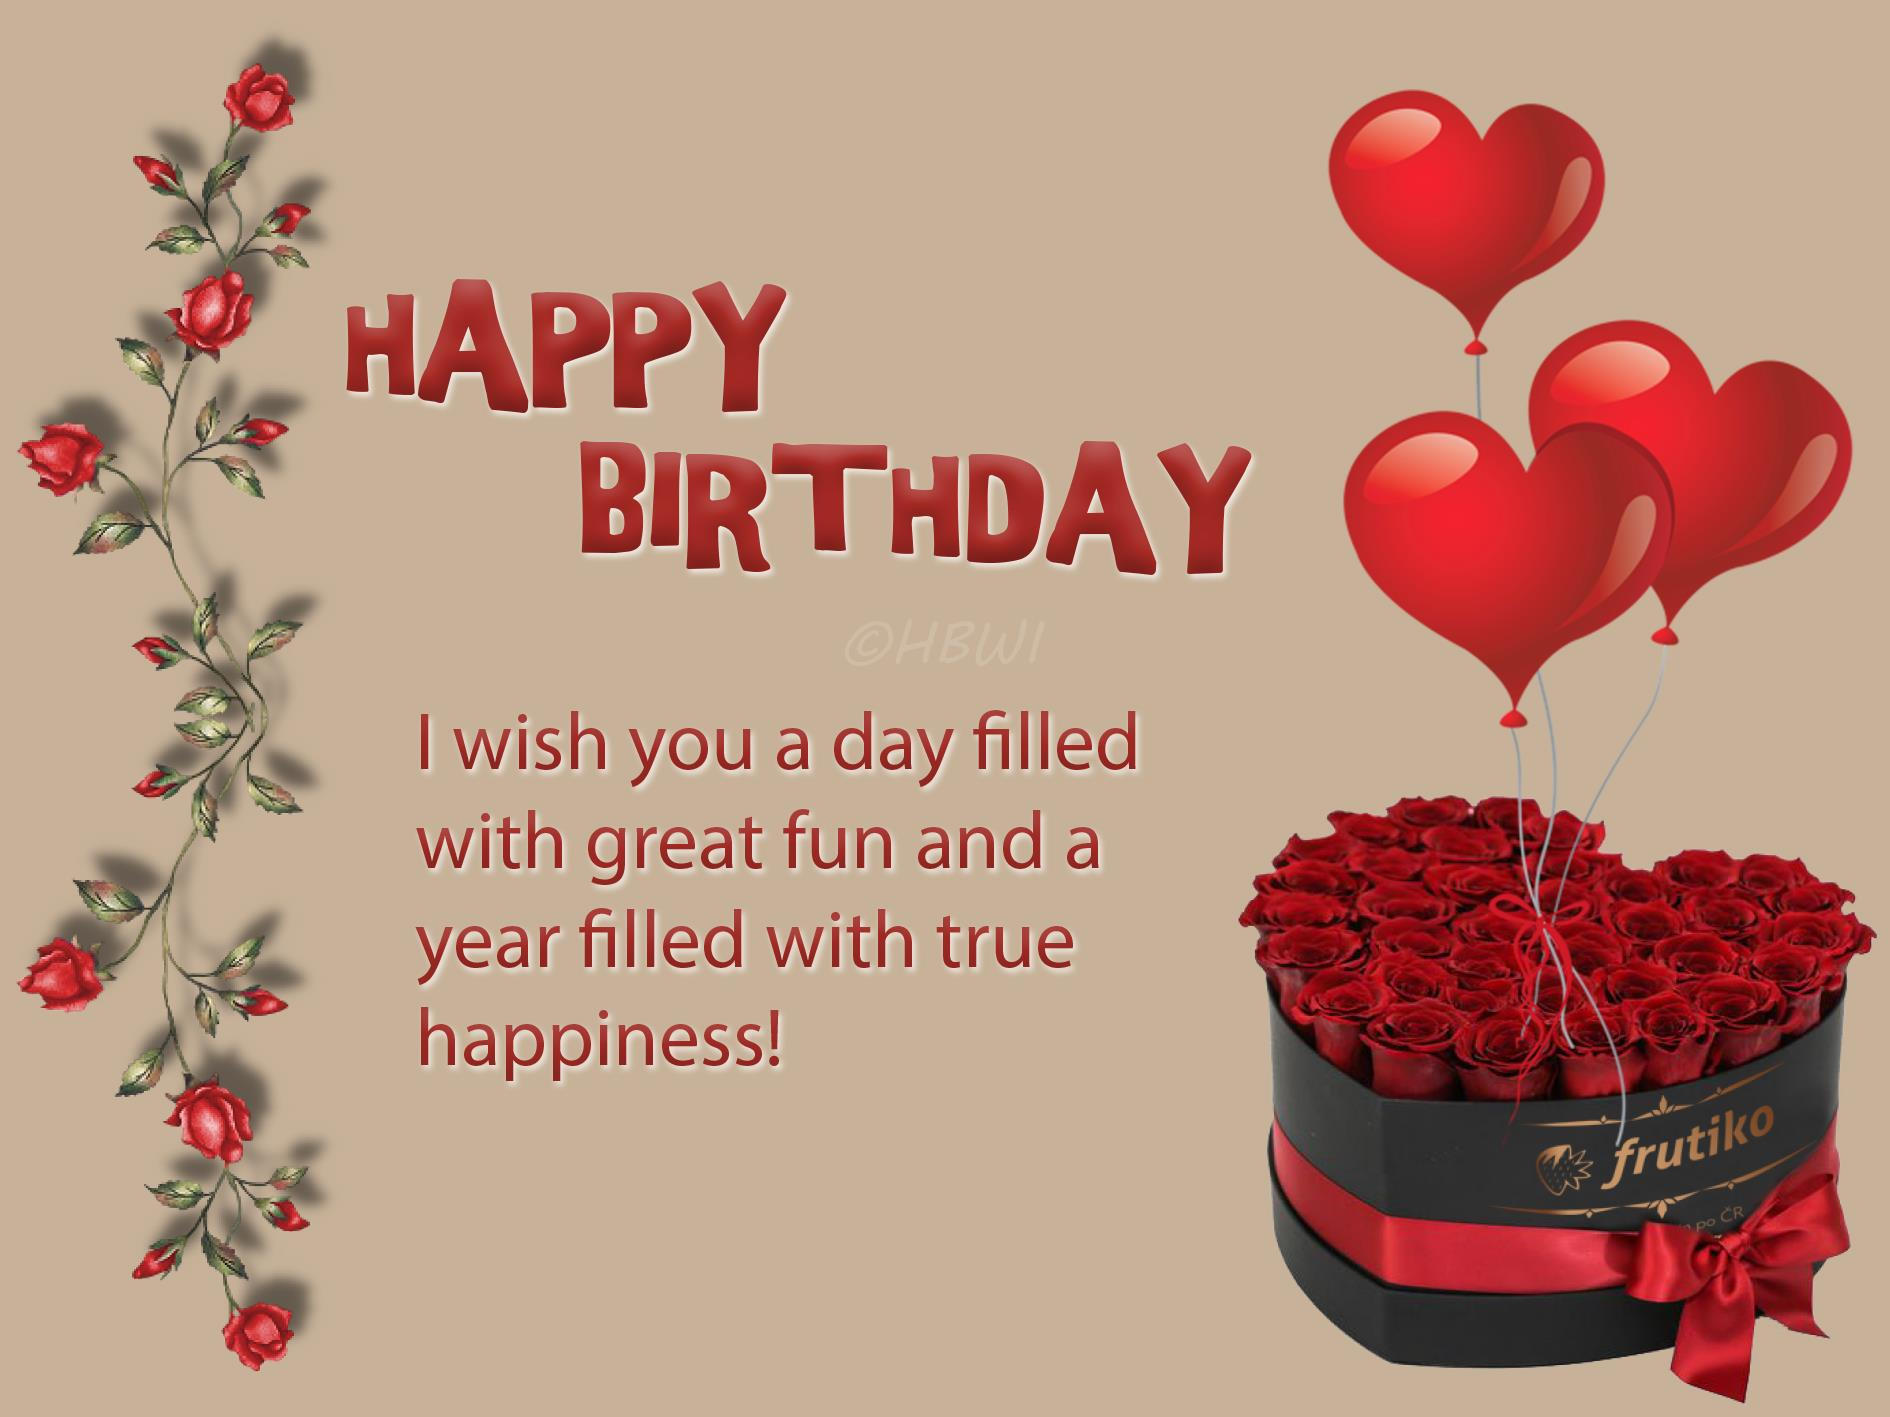 happy birthday quotes images hd ; New-HD-Birthday-wish-Card